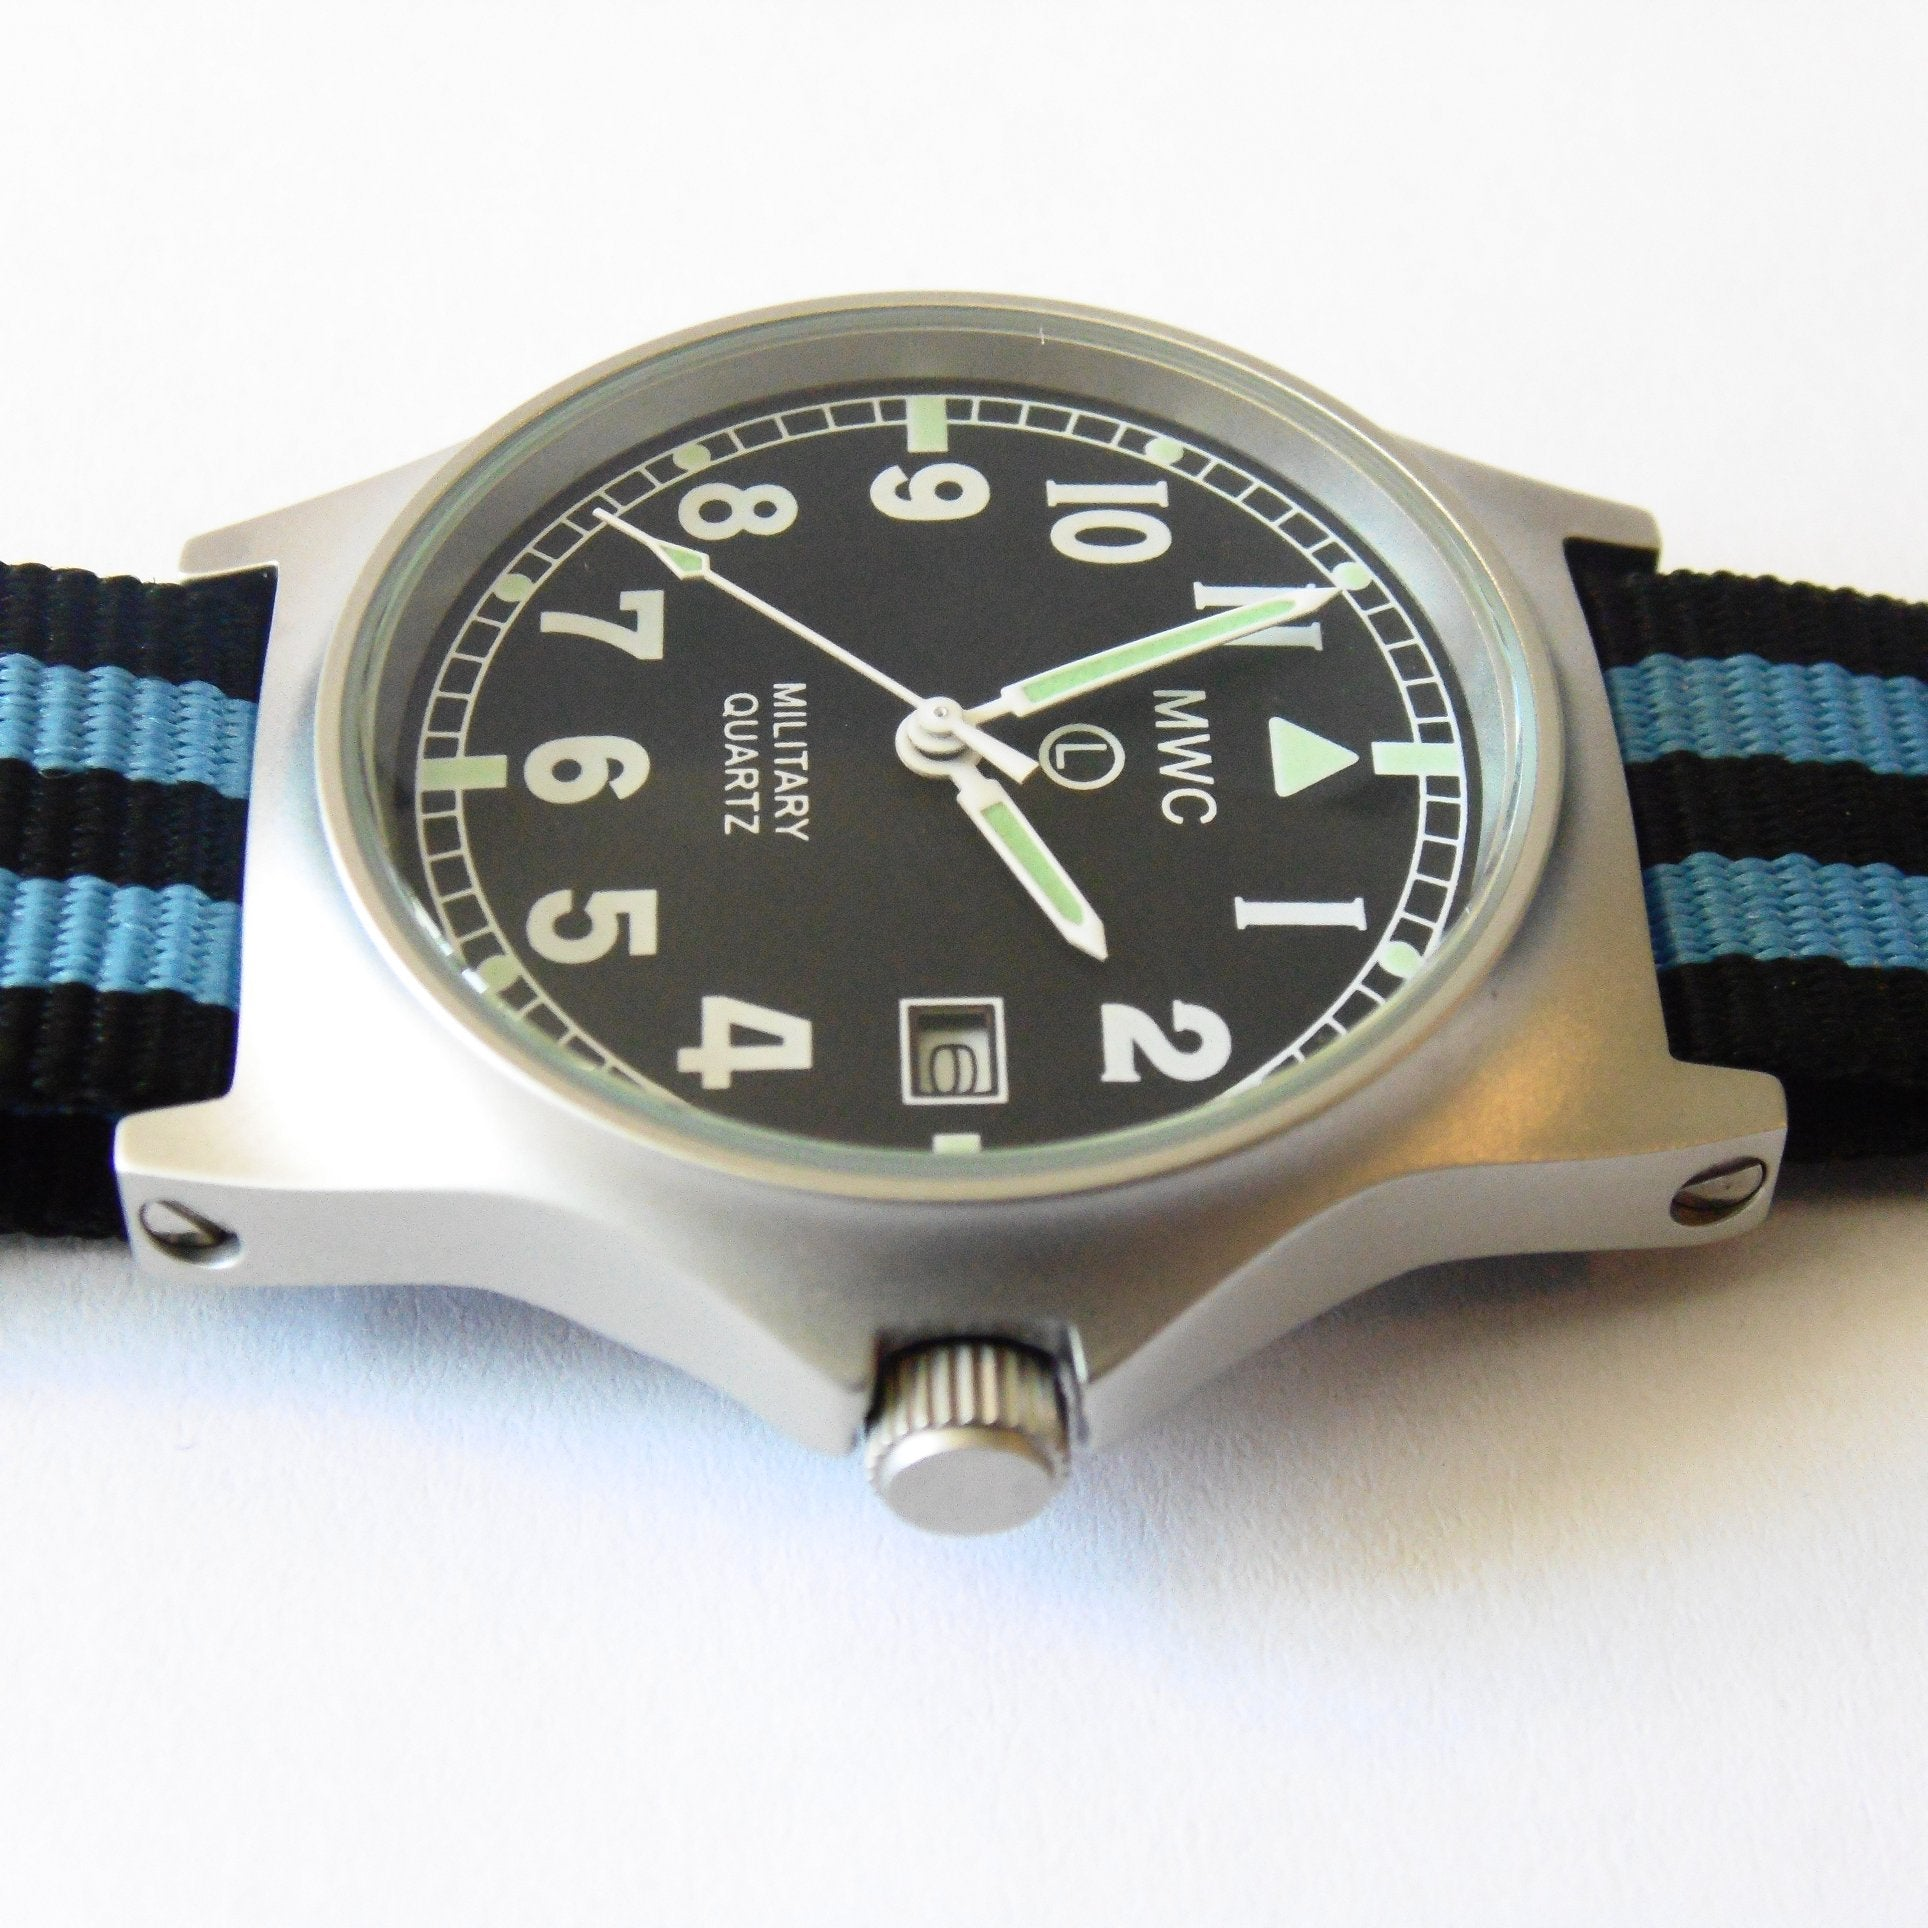 MWC G10 LM Military Watch (Black and Blue Nato Strap) - Watchfinder General - UK suppliers of Russian Vostok Parnis Watches MWC G10  - 3